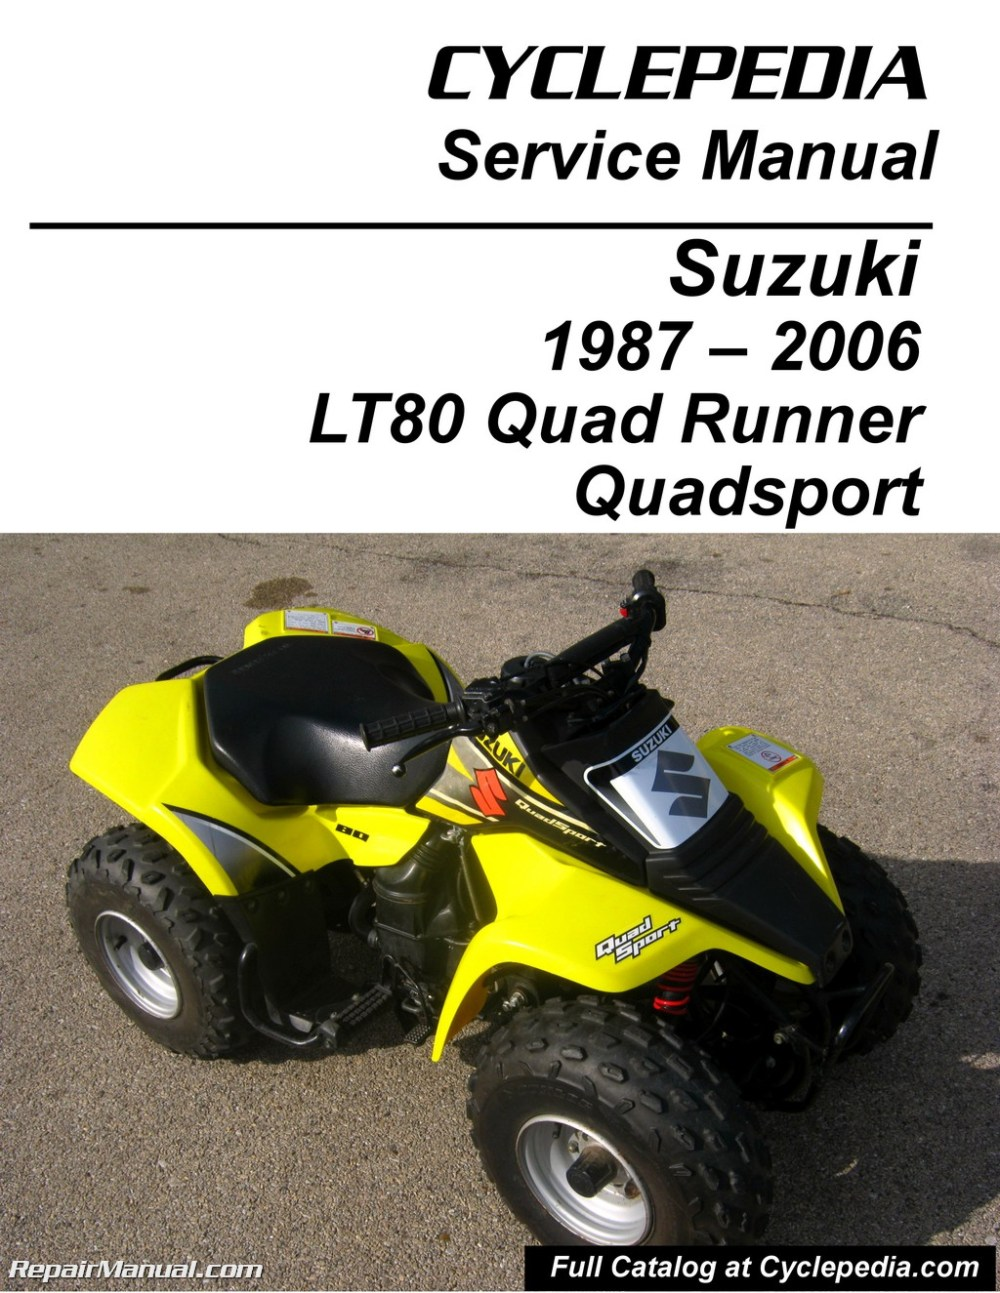 medium resolution of suzuki lt80 quadsport kawasaki kfx80 cyclepedia printed service manual rh repairmanual com kawasaki bayou 220 wiring schematic kawasaki prairie atv wiring